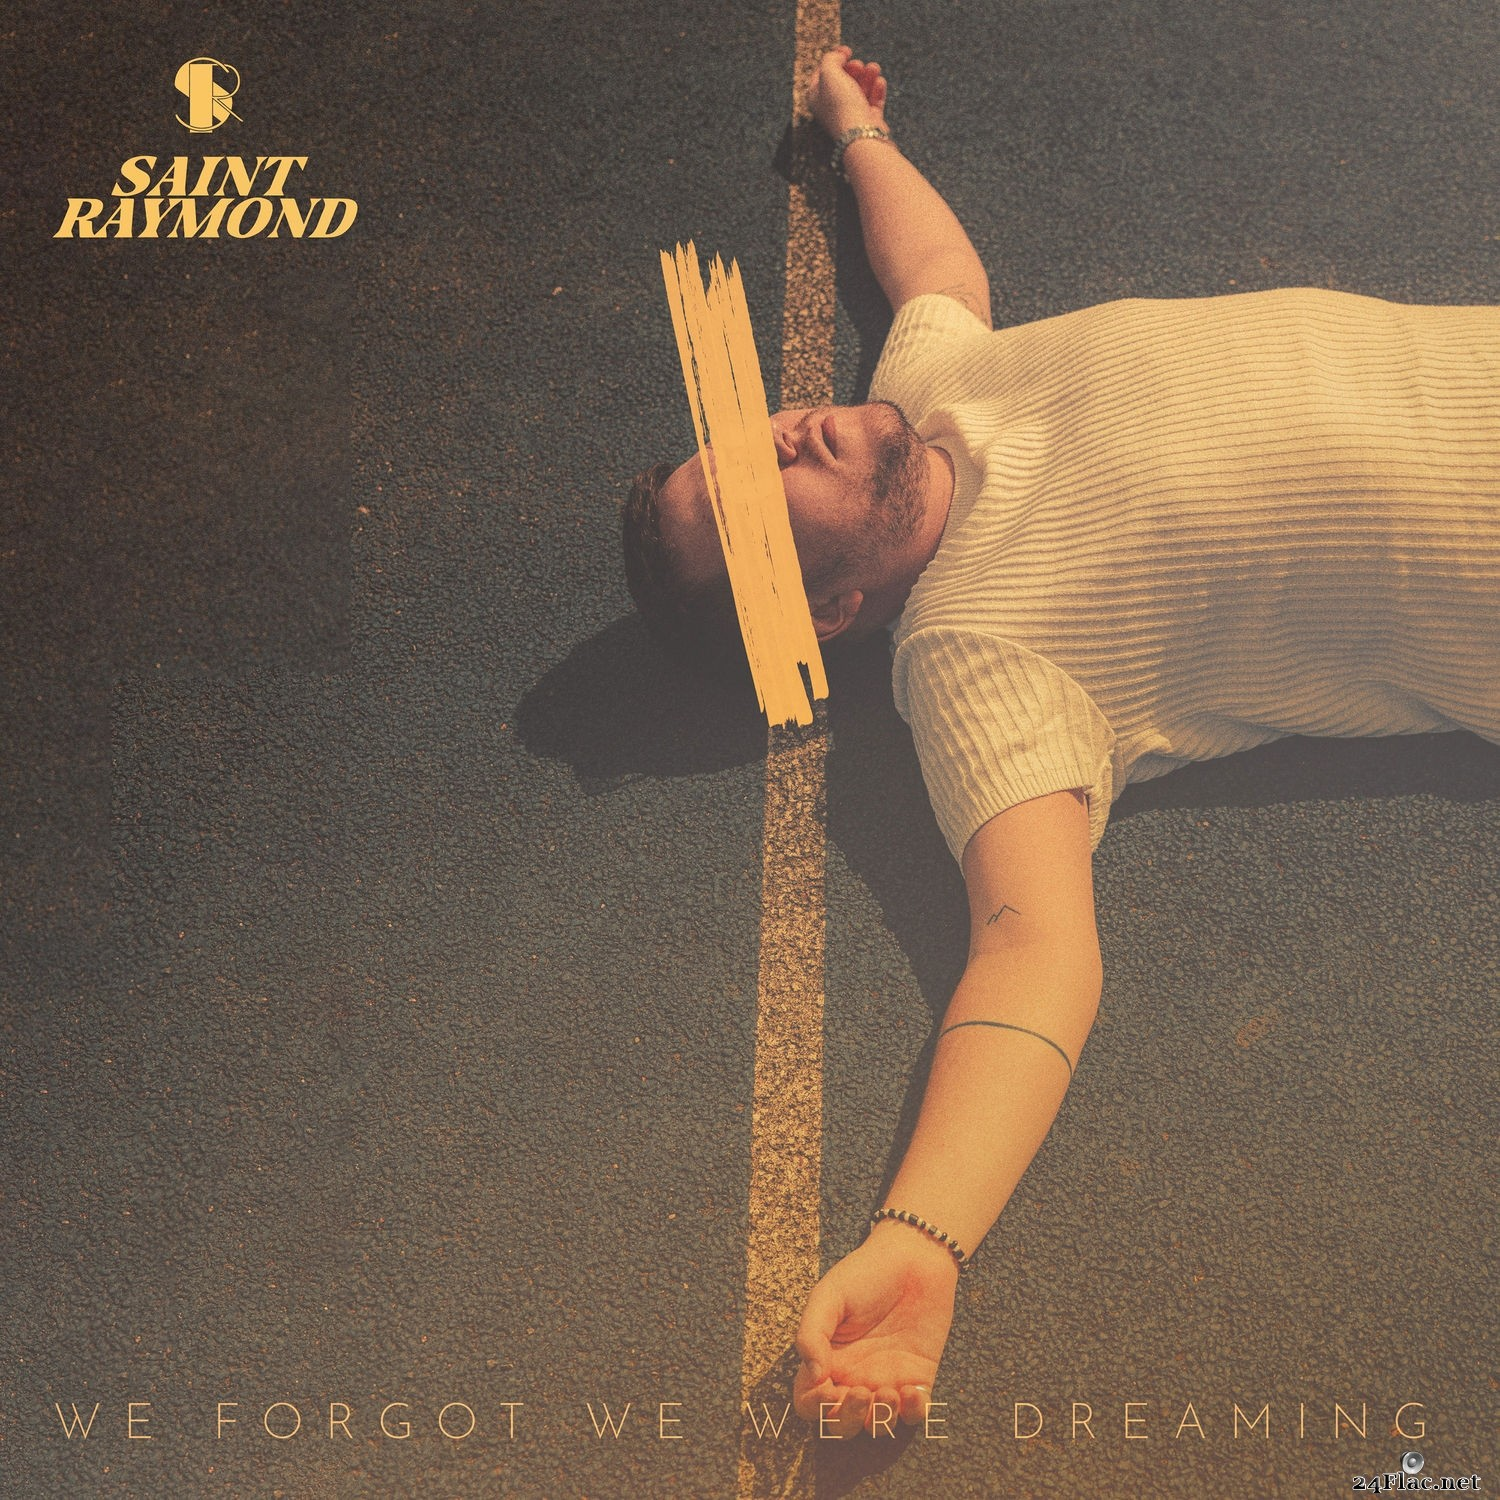 Saint Raymond - We Forgot We Were Dreaming (2021) Hi-Res